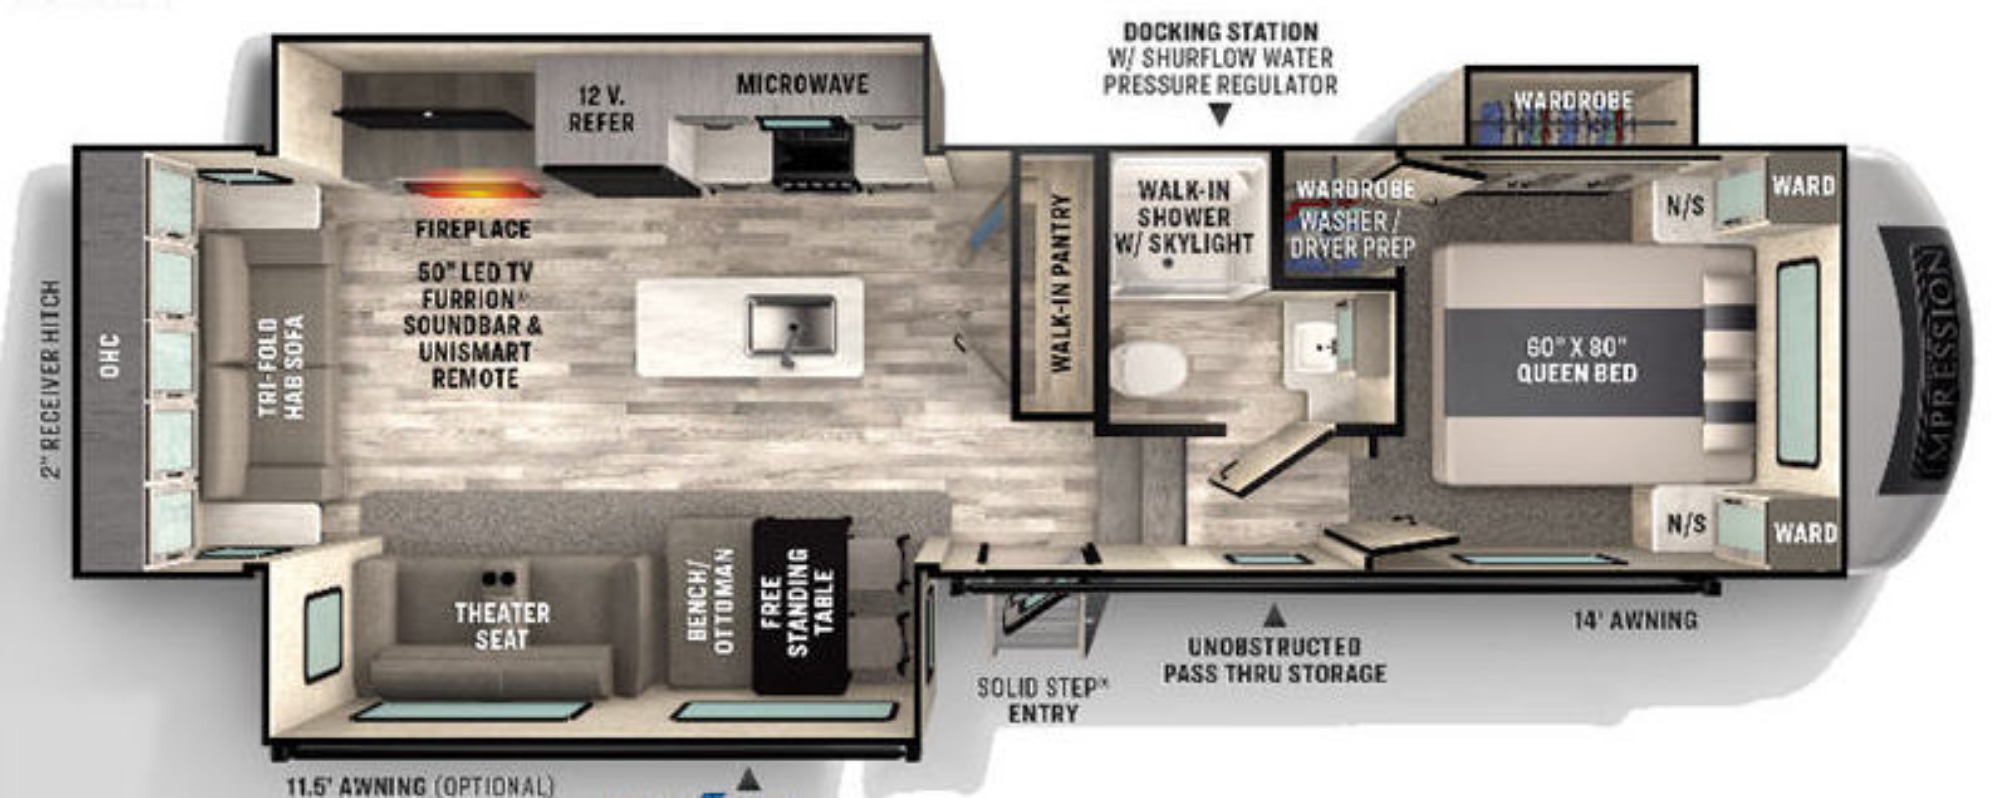 View Floor Plan for 2021 FOREST RIVER IMPRESSION 280RL